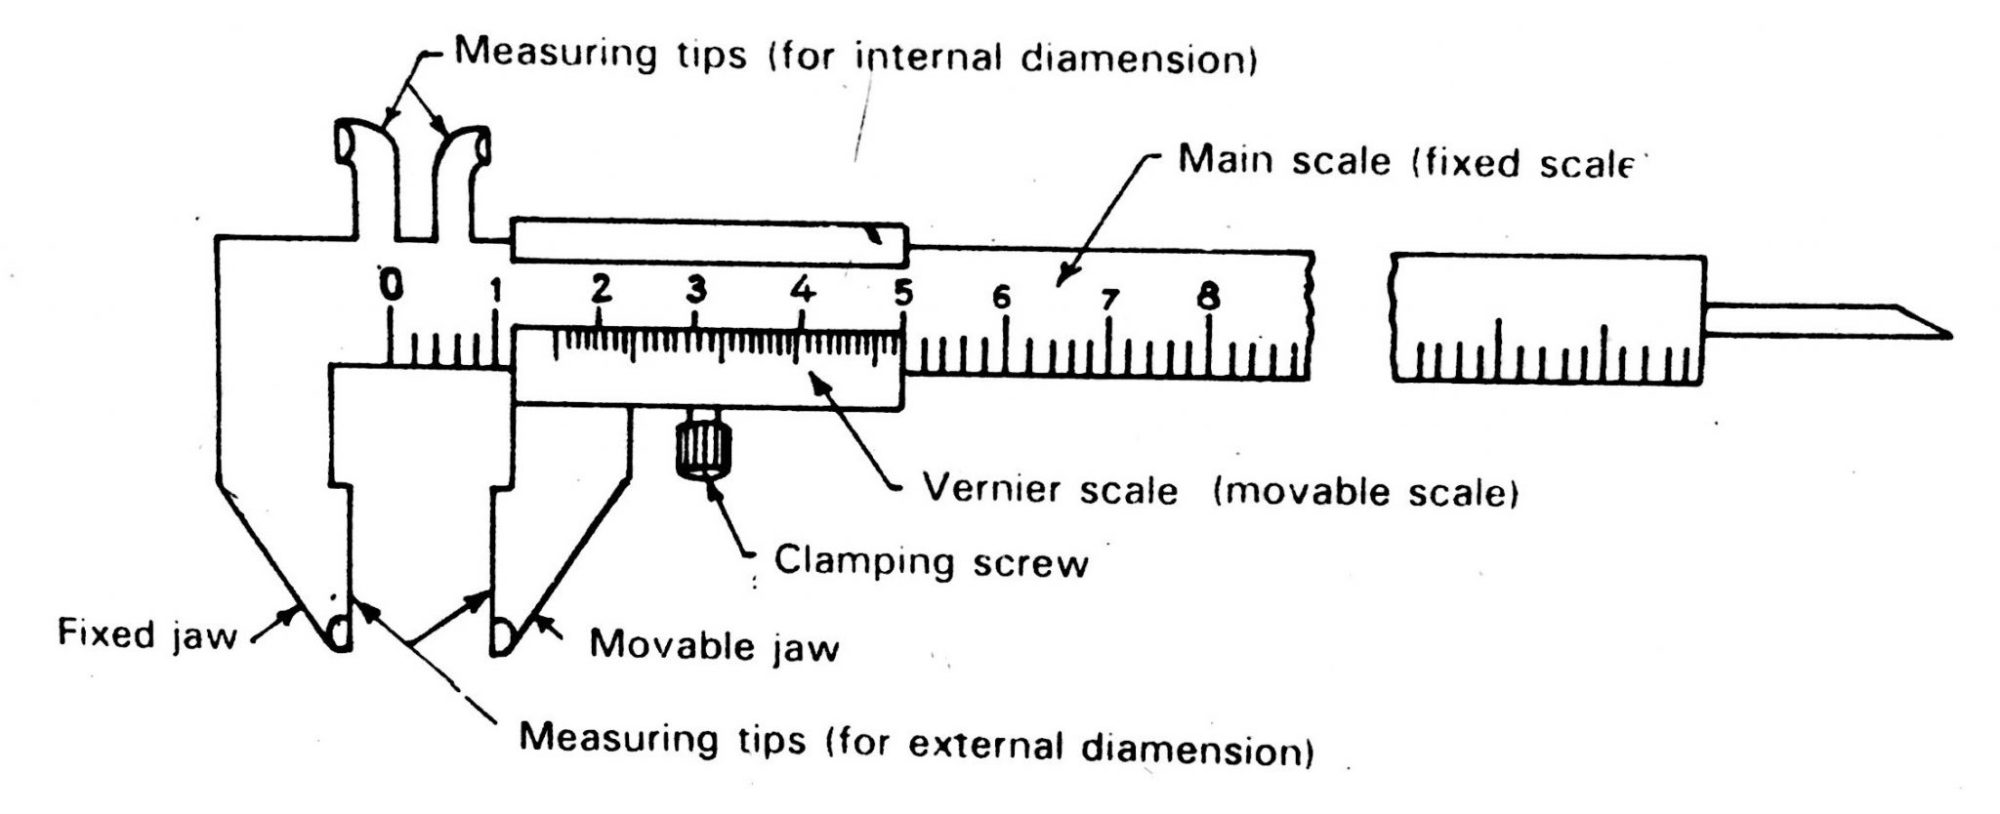 hight resolution of diagram of caliper wiring diagram usedvernier calliper diagram working principle extrudesign labeled diagram of vernier